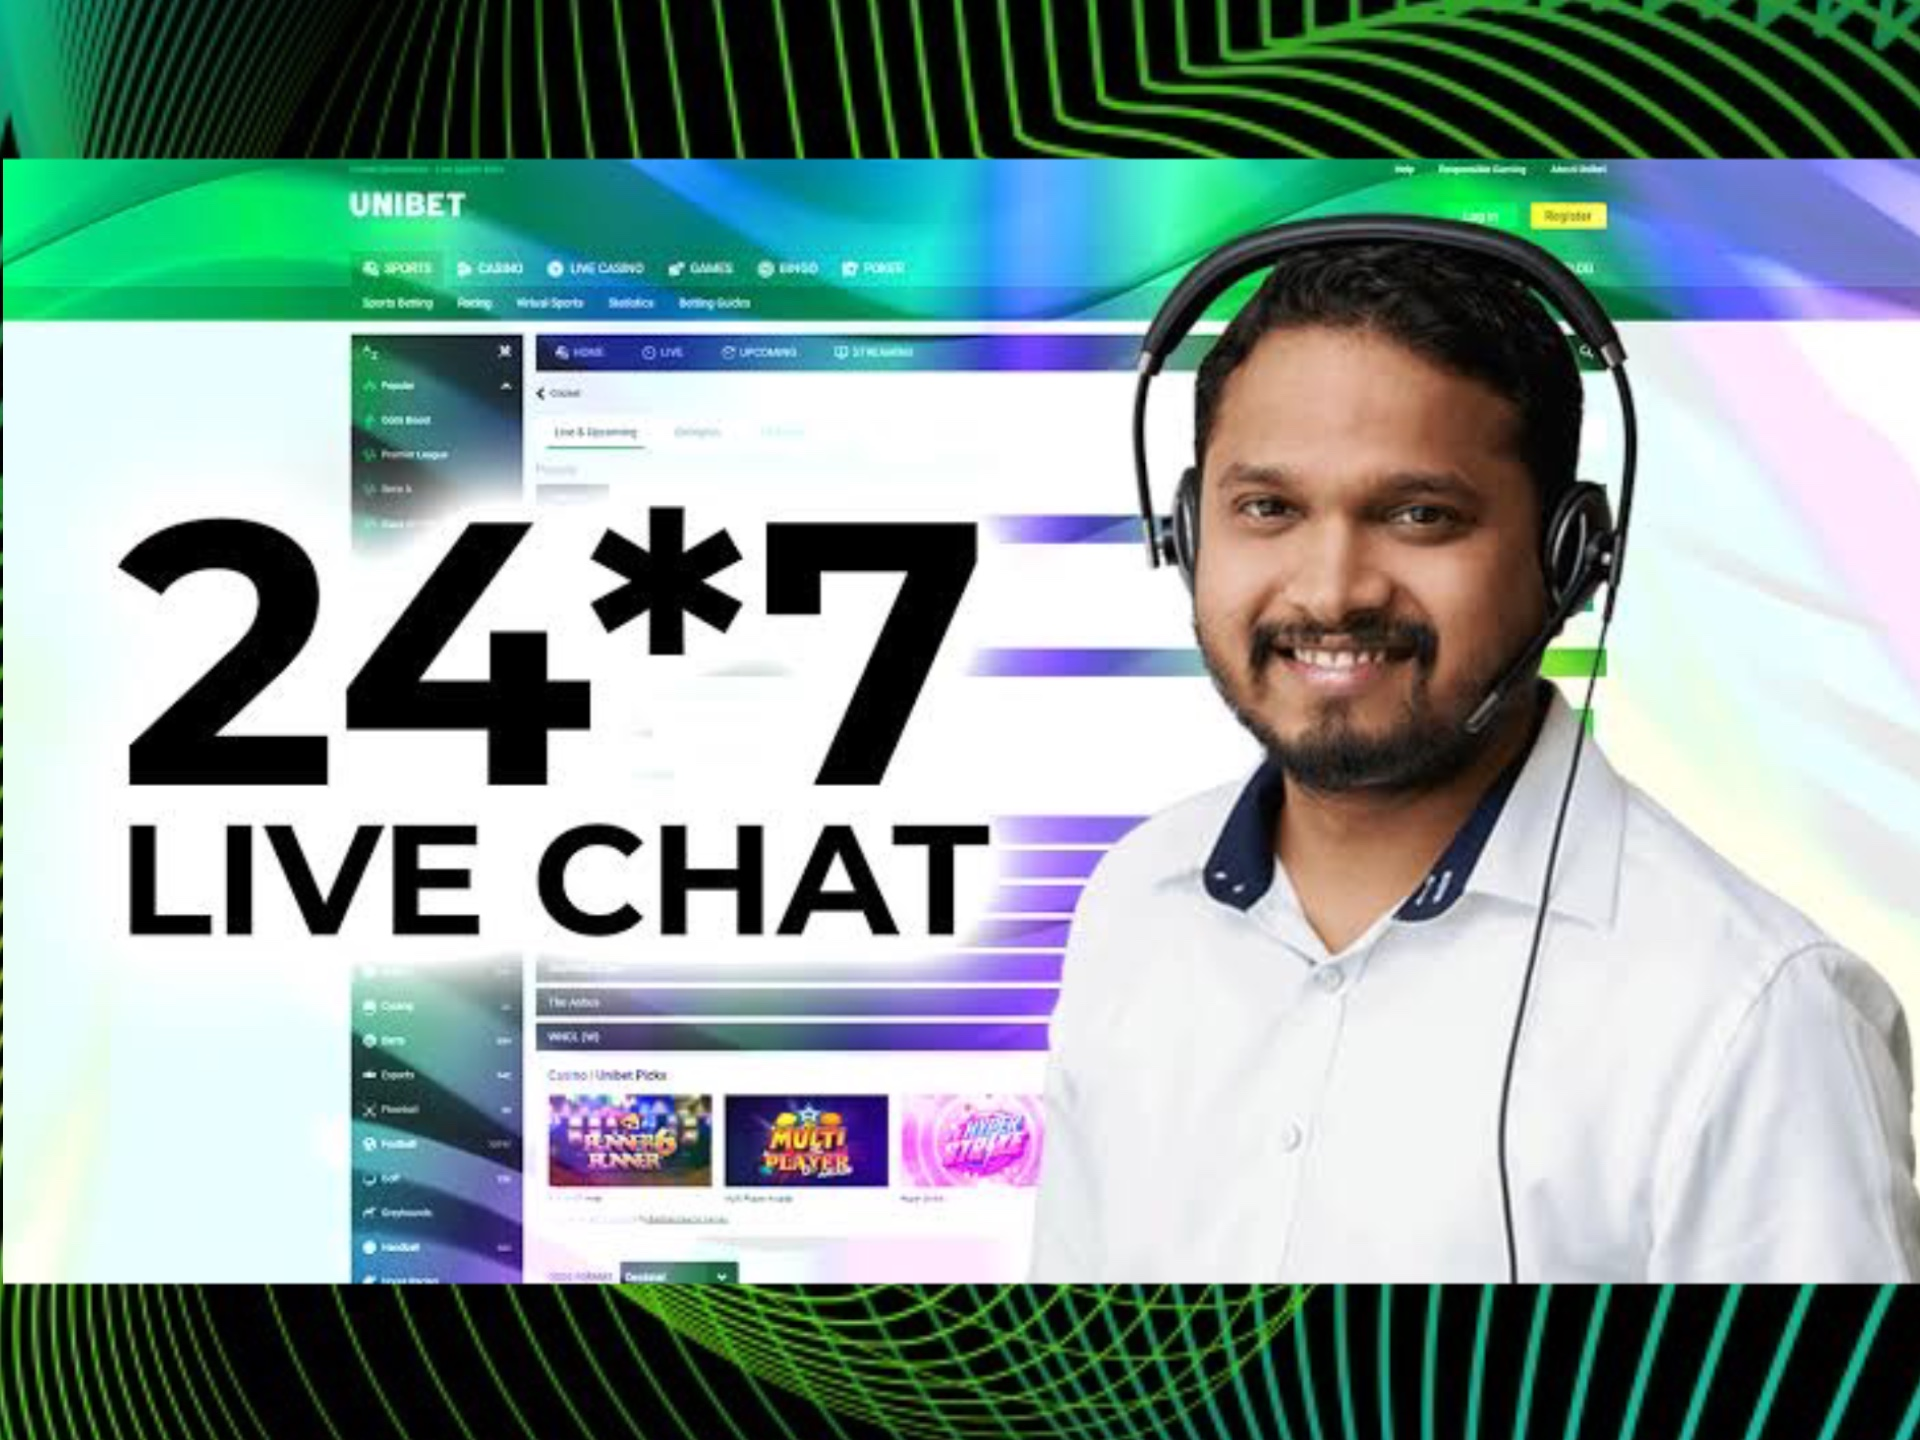 You can contact Unibet support team 24/7.